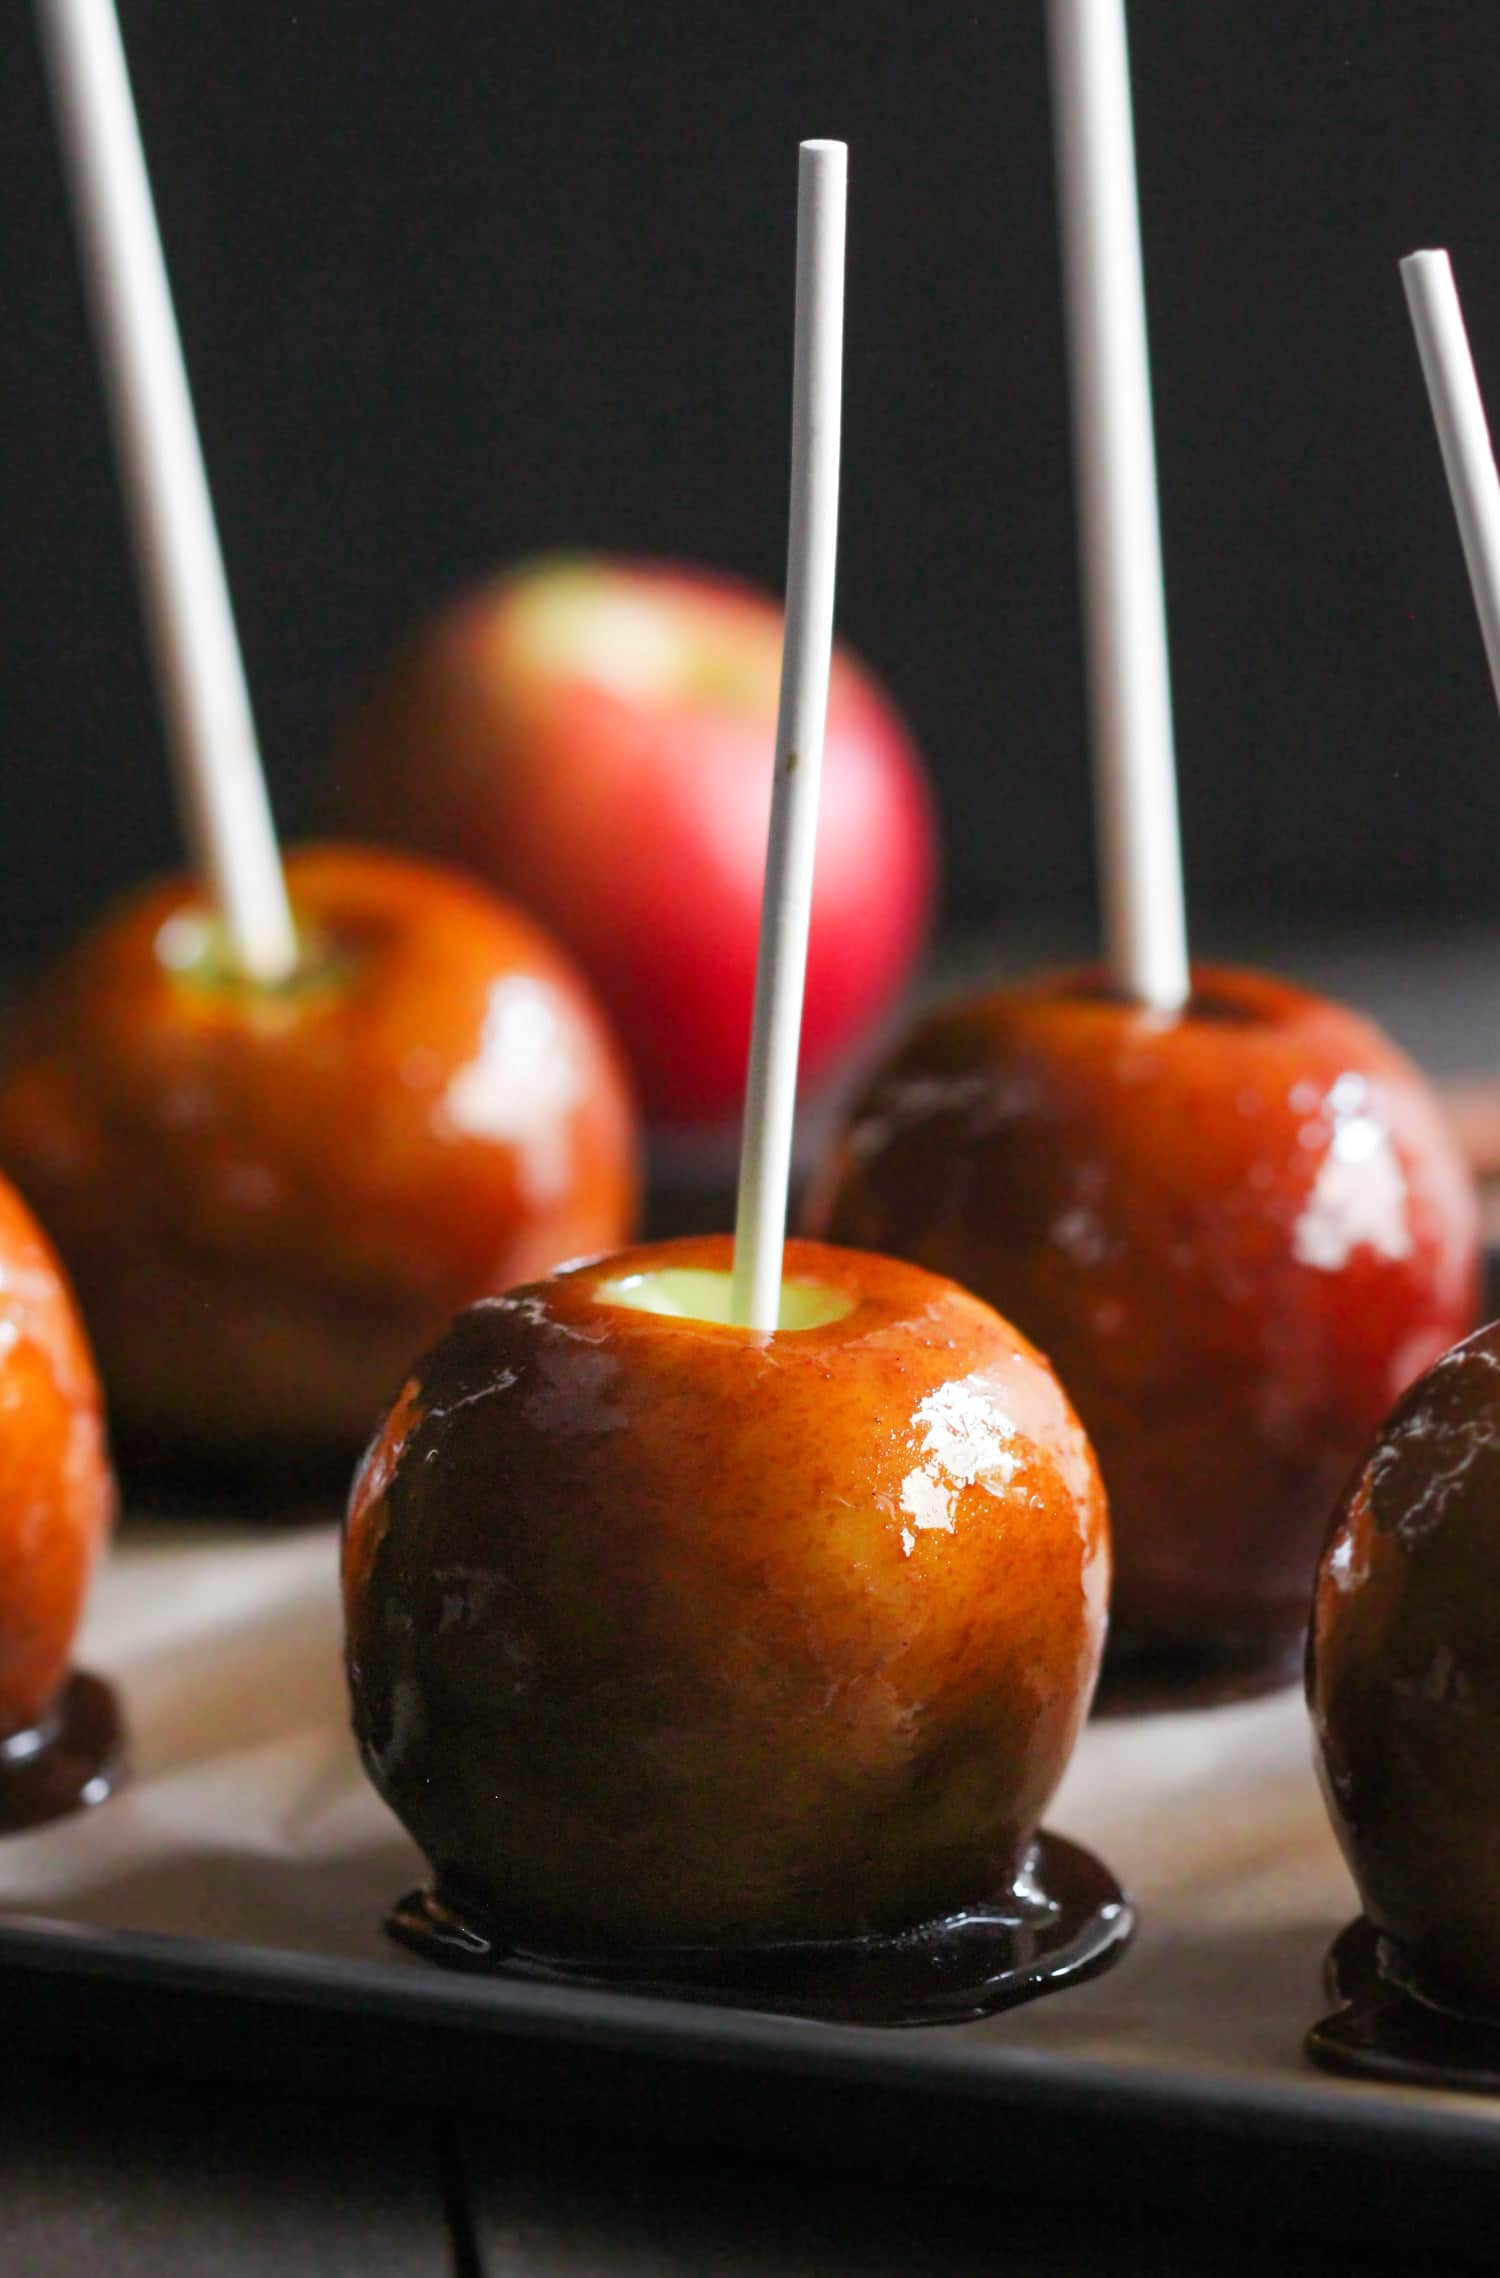 Healthy Caramel Apples! Love Caramel Apples but don't want all the sugar, corn syrup, cream, or butter? Make them at home! These sweet, crunchy apples are coated in a rich, sticky caramel. They're so addicting you'd NEVER suspect they're refined sugar free (made without corn syrup!), dairy free, and vegan. Healthy Dessert Recipes at the Desserts With Benefits Blog (www.DessertsWithBenefits.com)